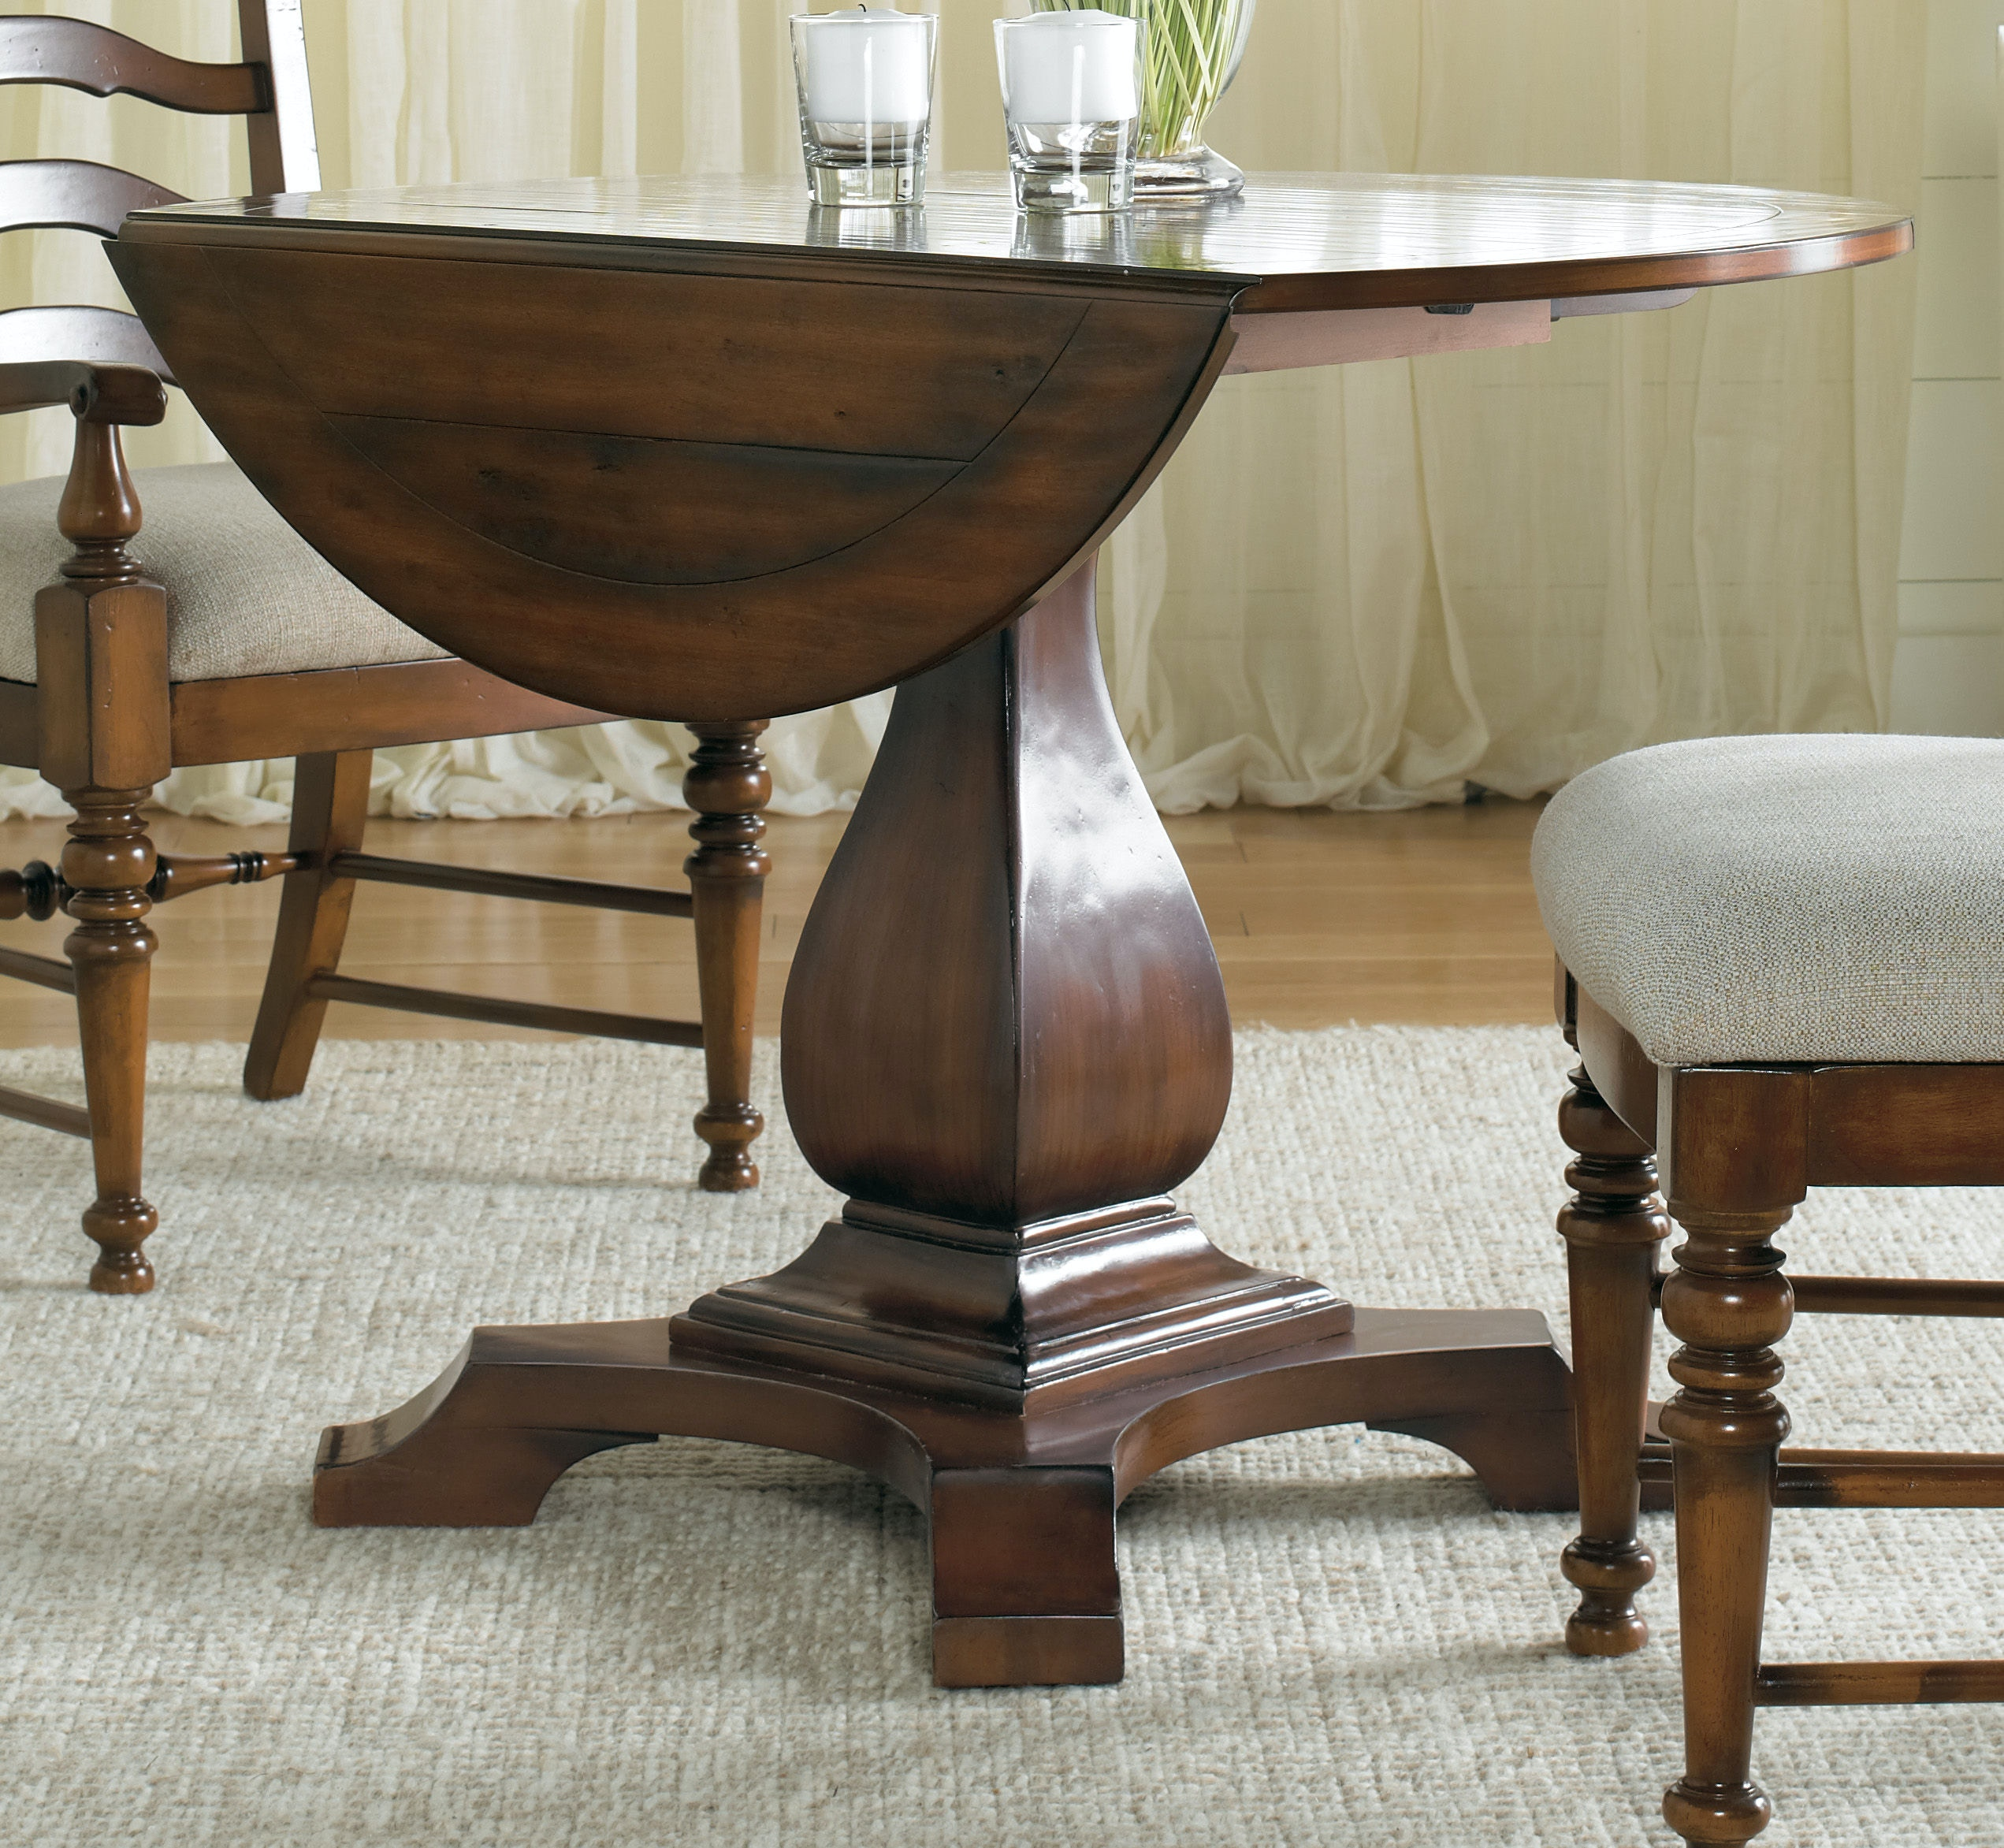 hooker furniture dining room waverly place round drop leaf pedestal table 366 75 218. Black Bedroom Furniture Sets. Home Design Ideas